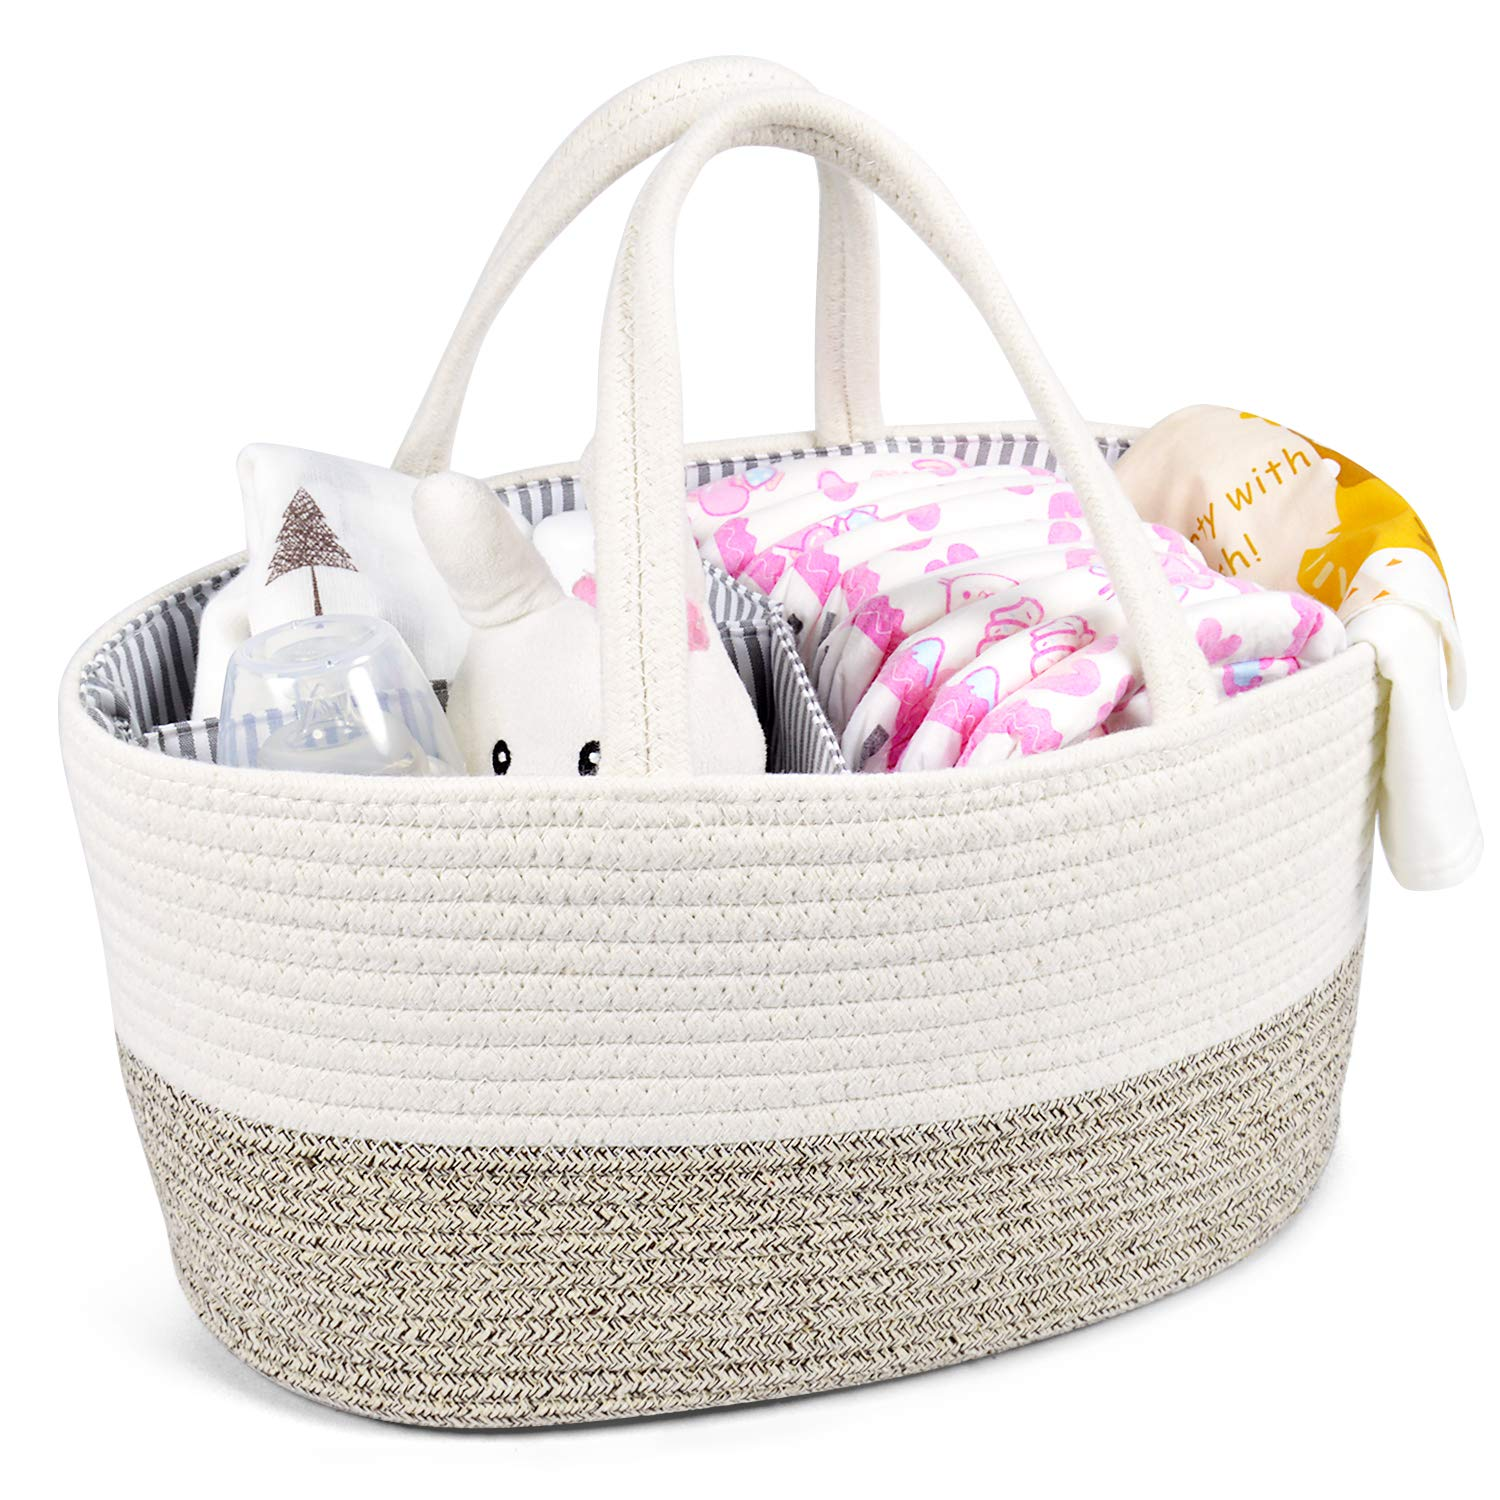 Baby Diaper Sale Caddy Organizer - Changing 70% OFF Outlet Table